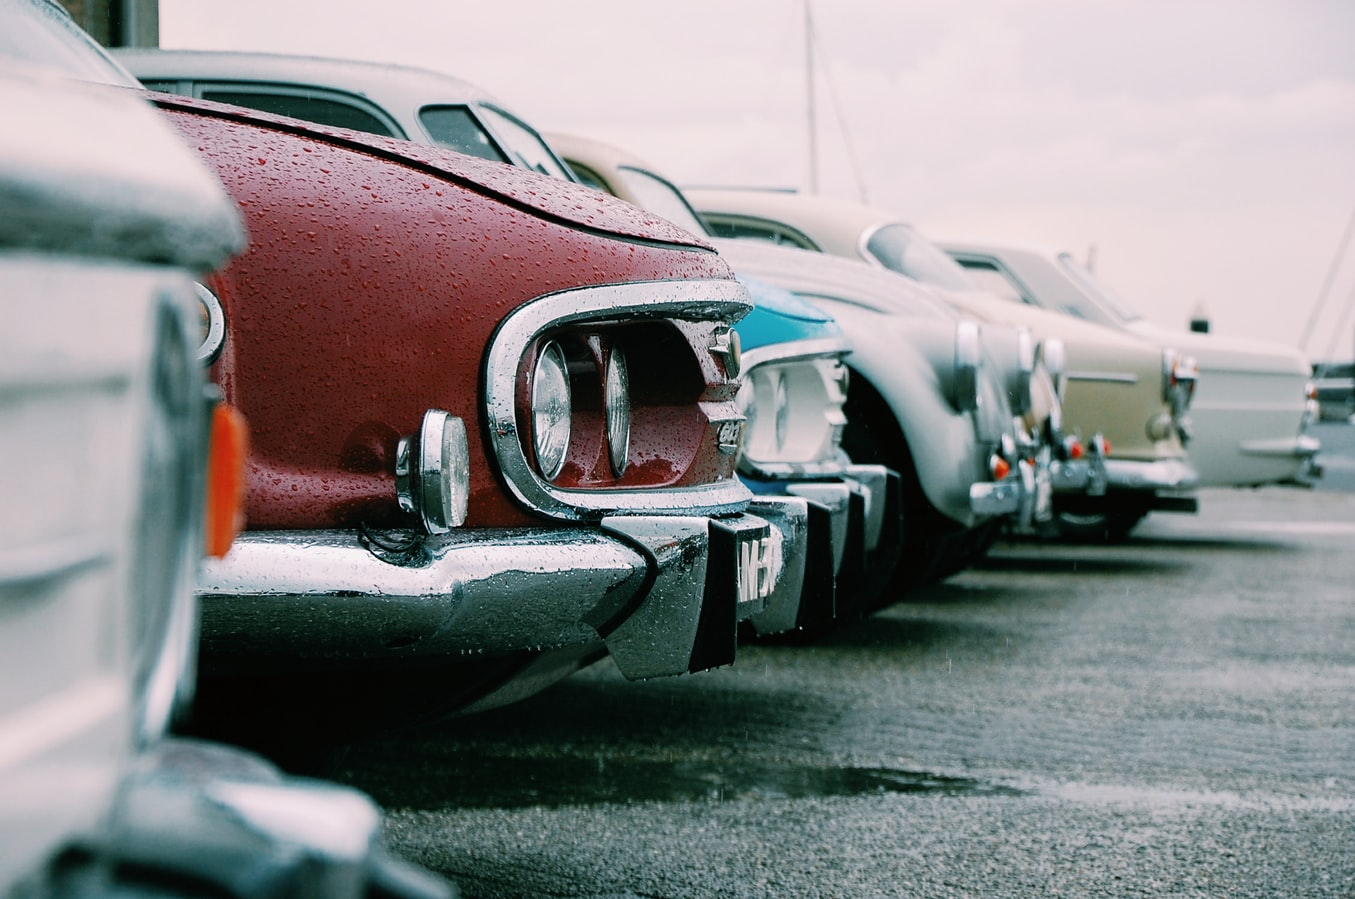 A close-up of the noses of several classic cars lined up in a parking lot